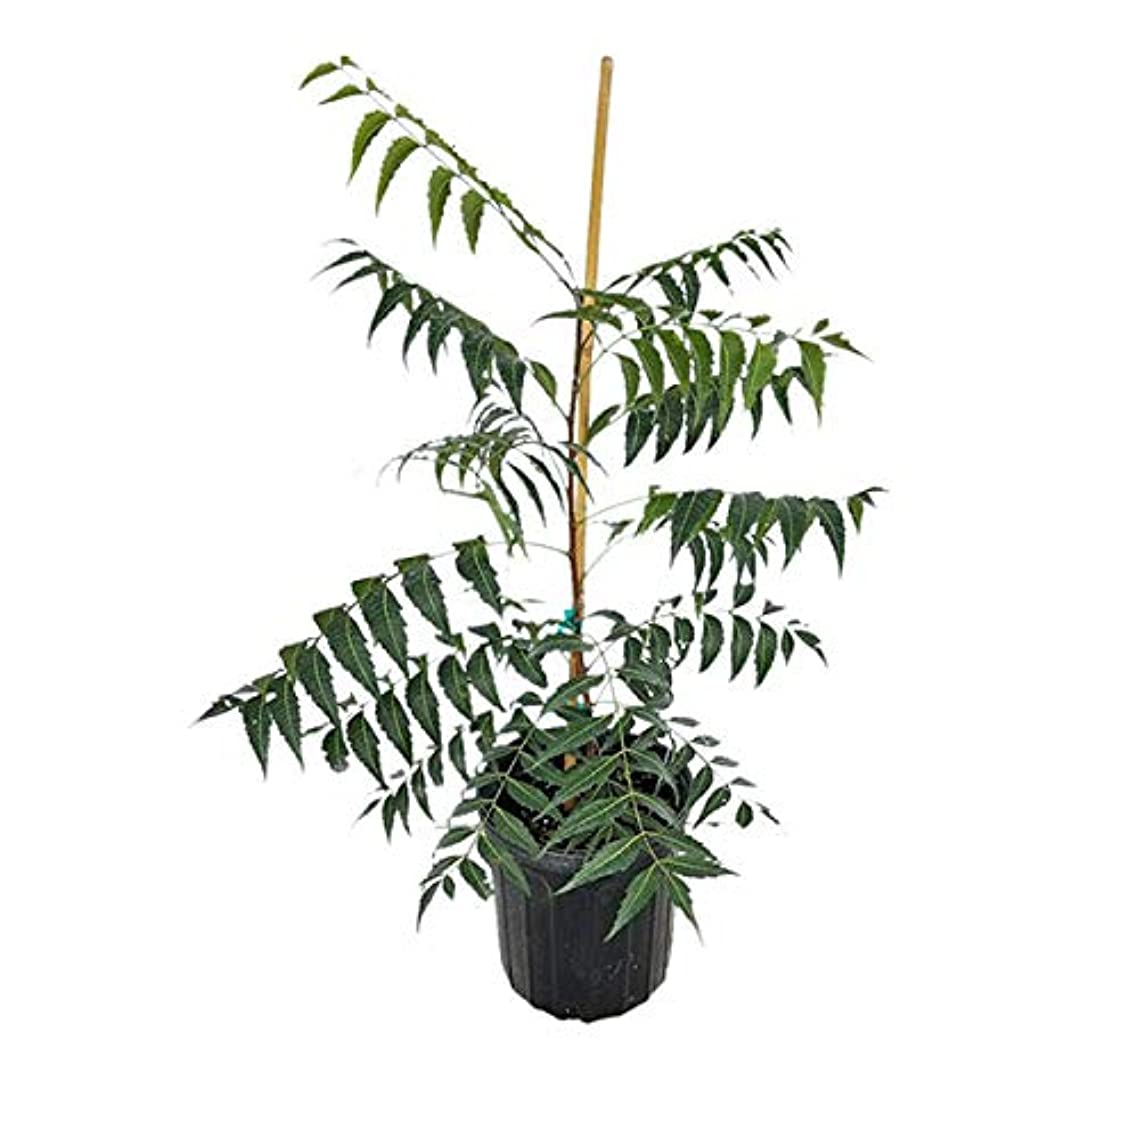 PlantVine Azadirachta Indica, Neem Tree, Indian Lilac - Large - 8-10 Inch Pot (3 Gallon), Live Plant